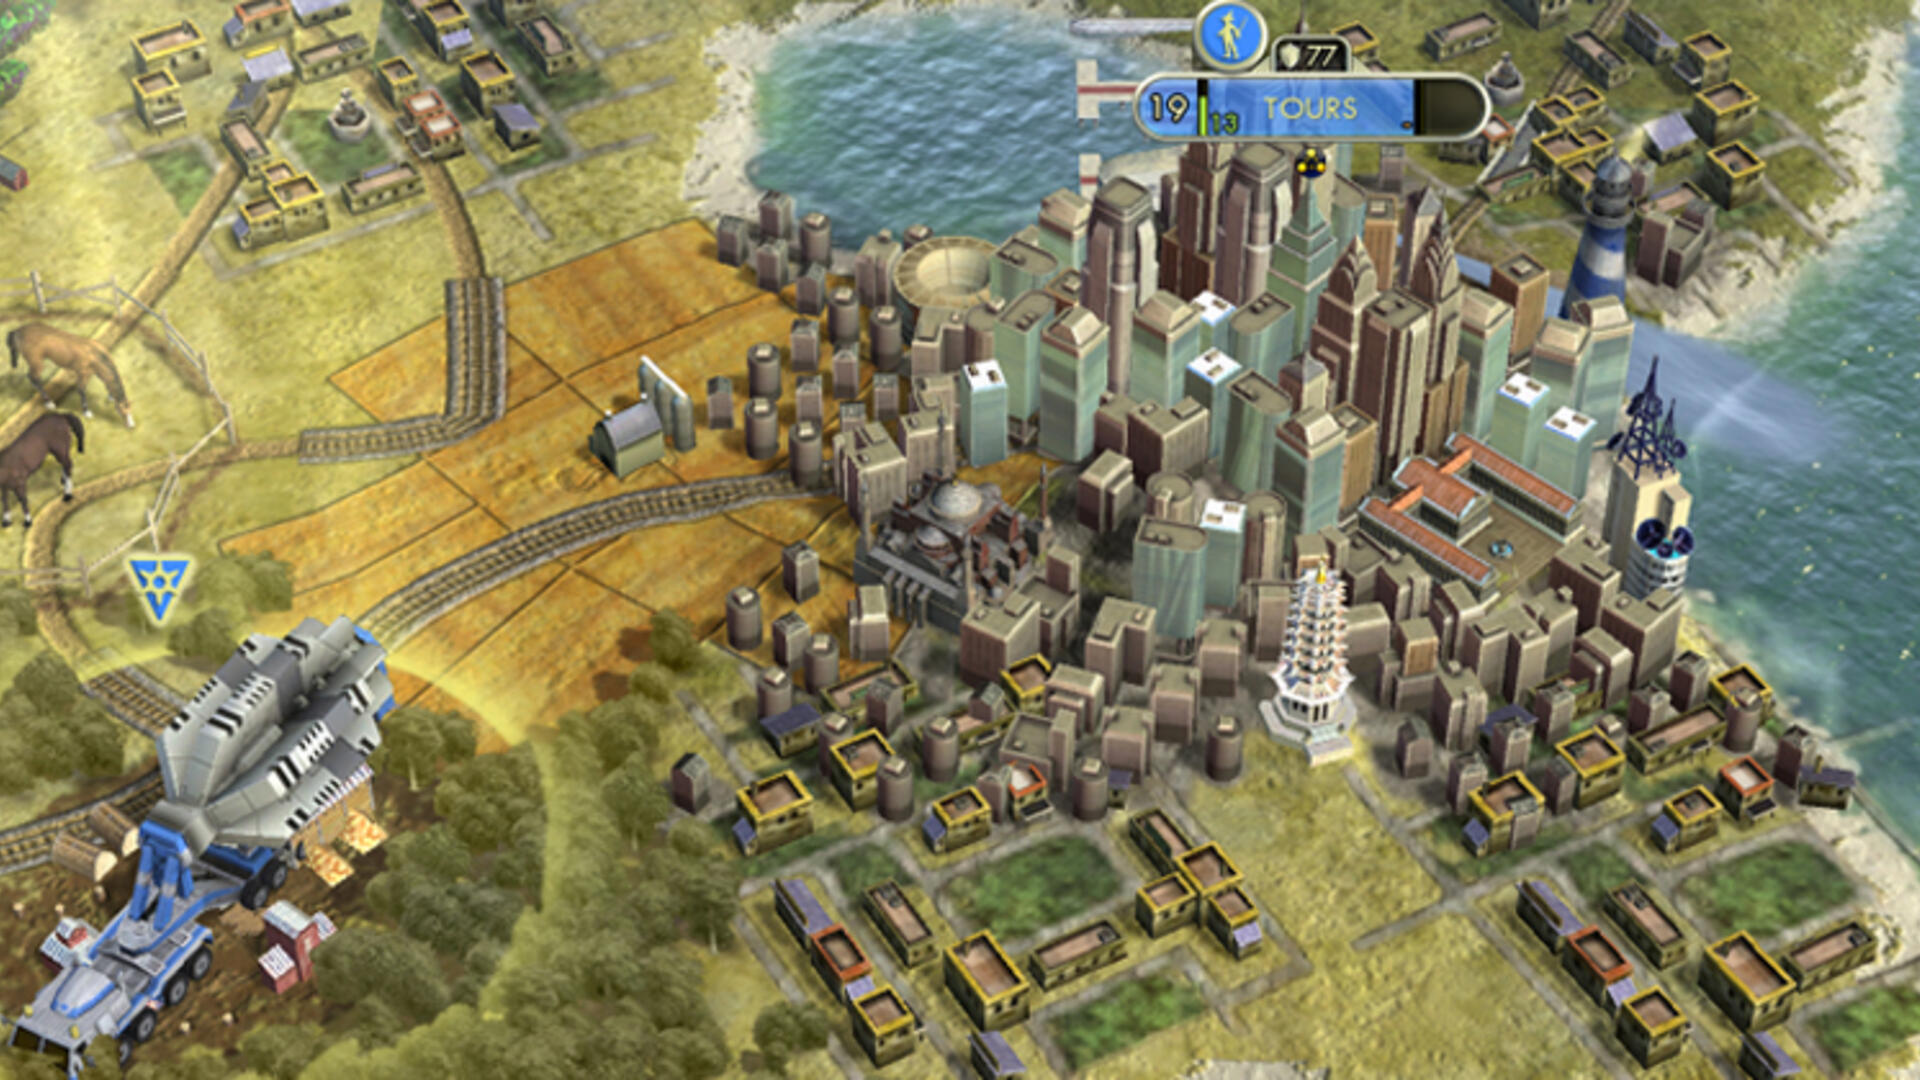 Blog: Why I'm Increasingly Drawn to Open-ended Games